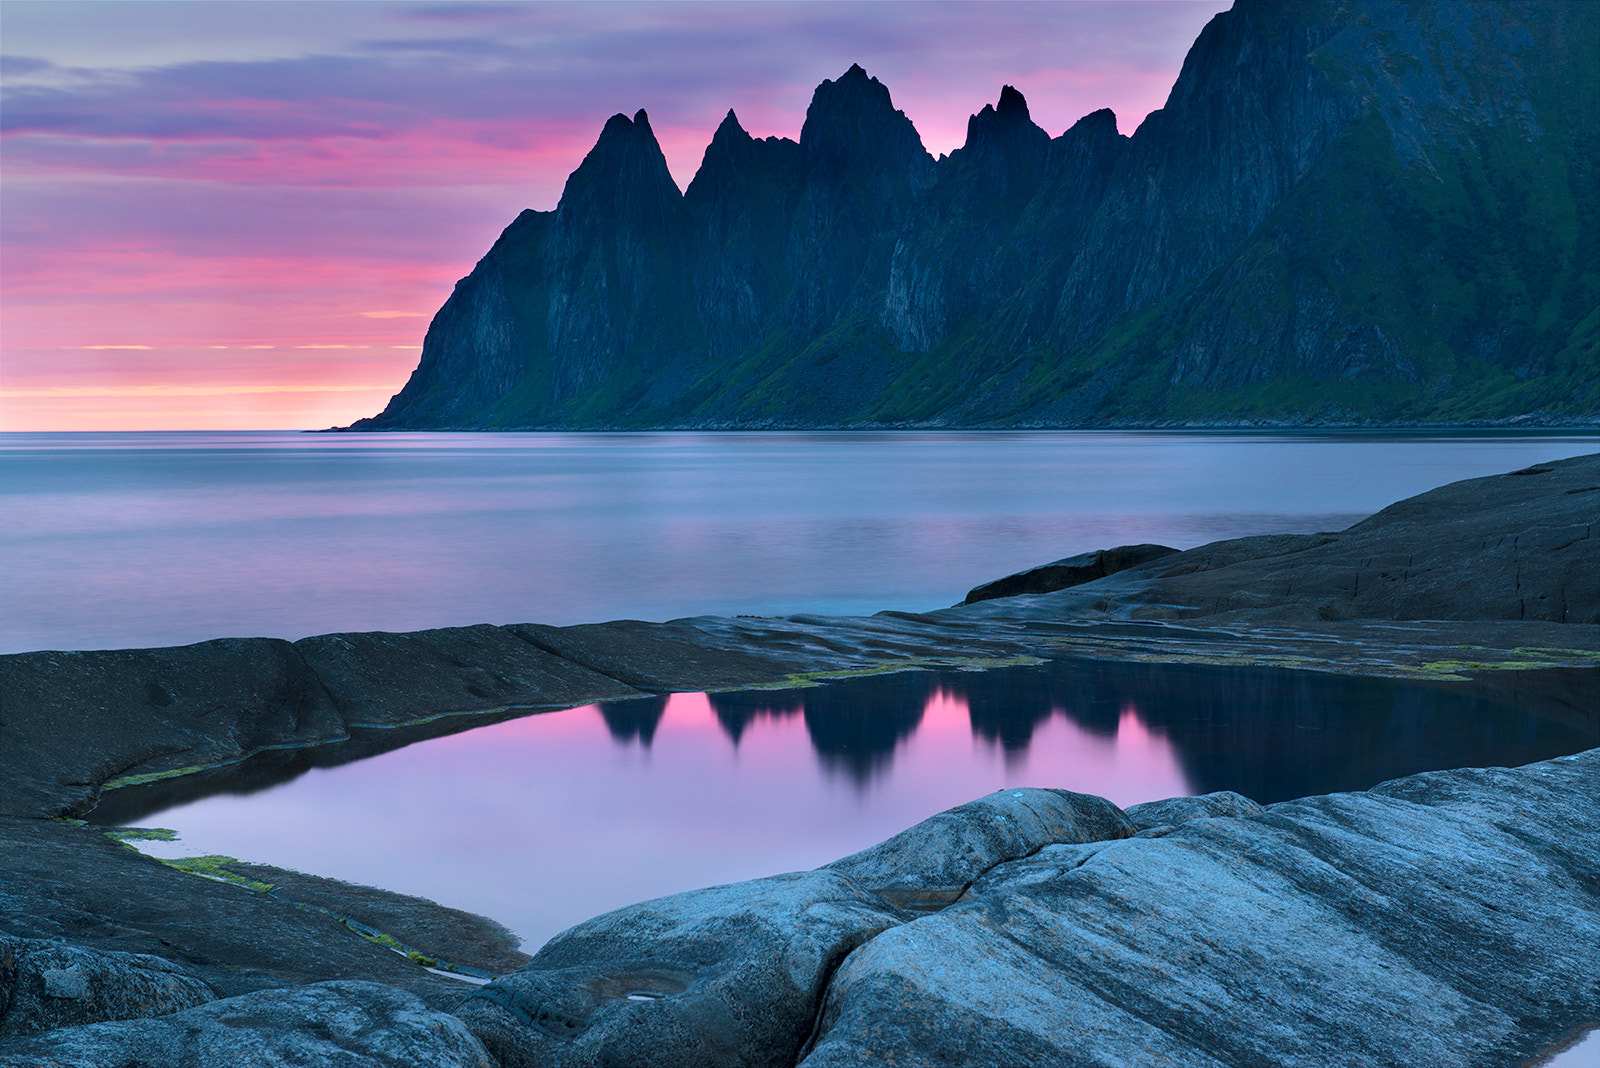 Photograph The dawn on the island of Senja by Andre Ermolaev on 500px